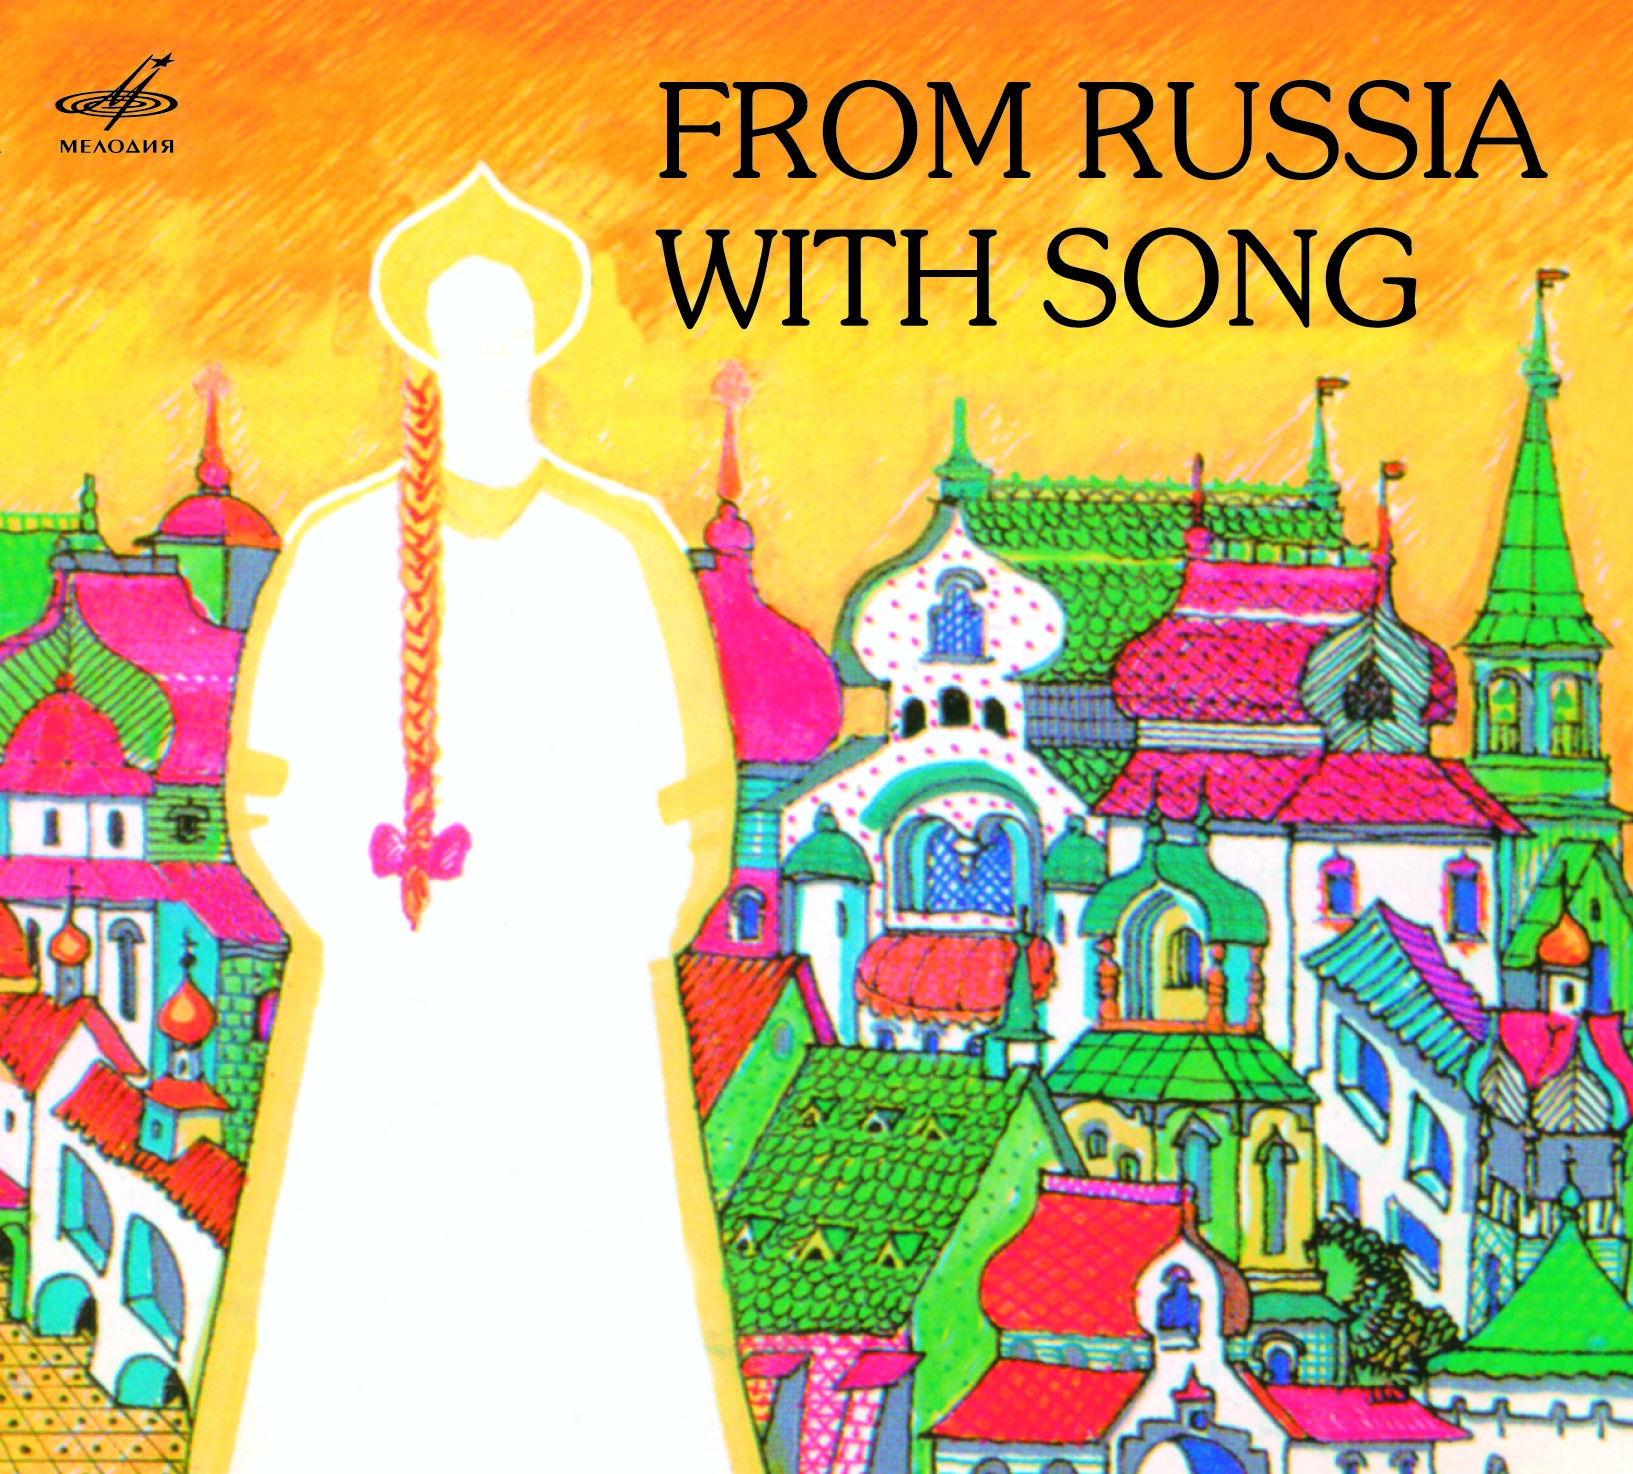 From Russia with Songs